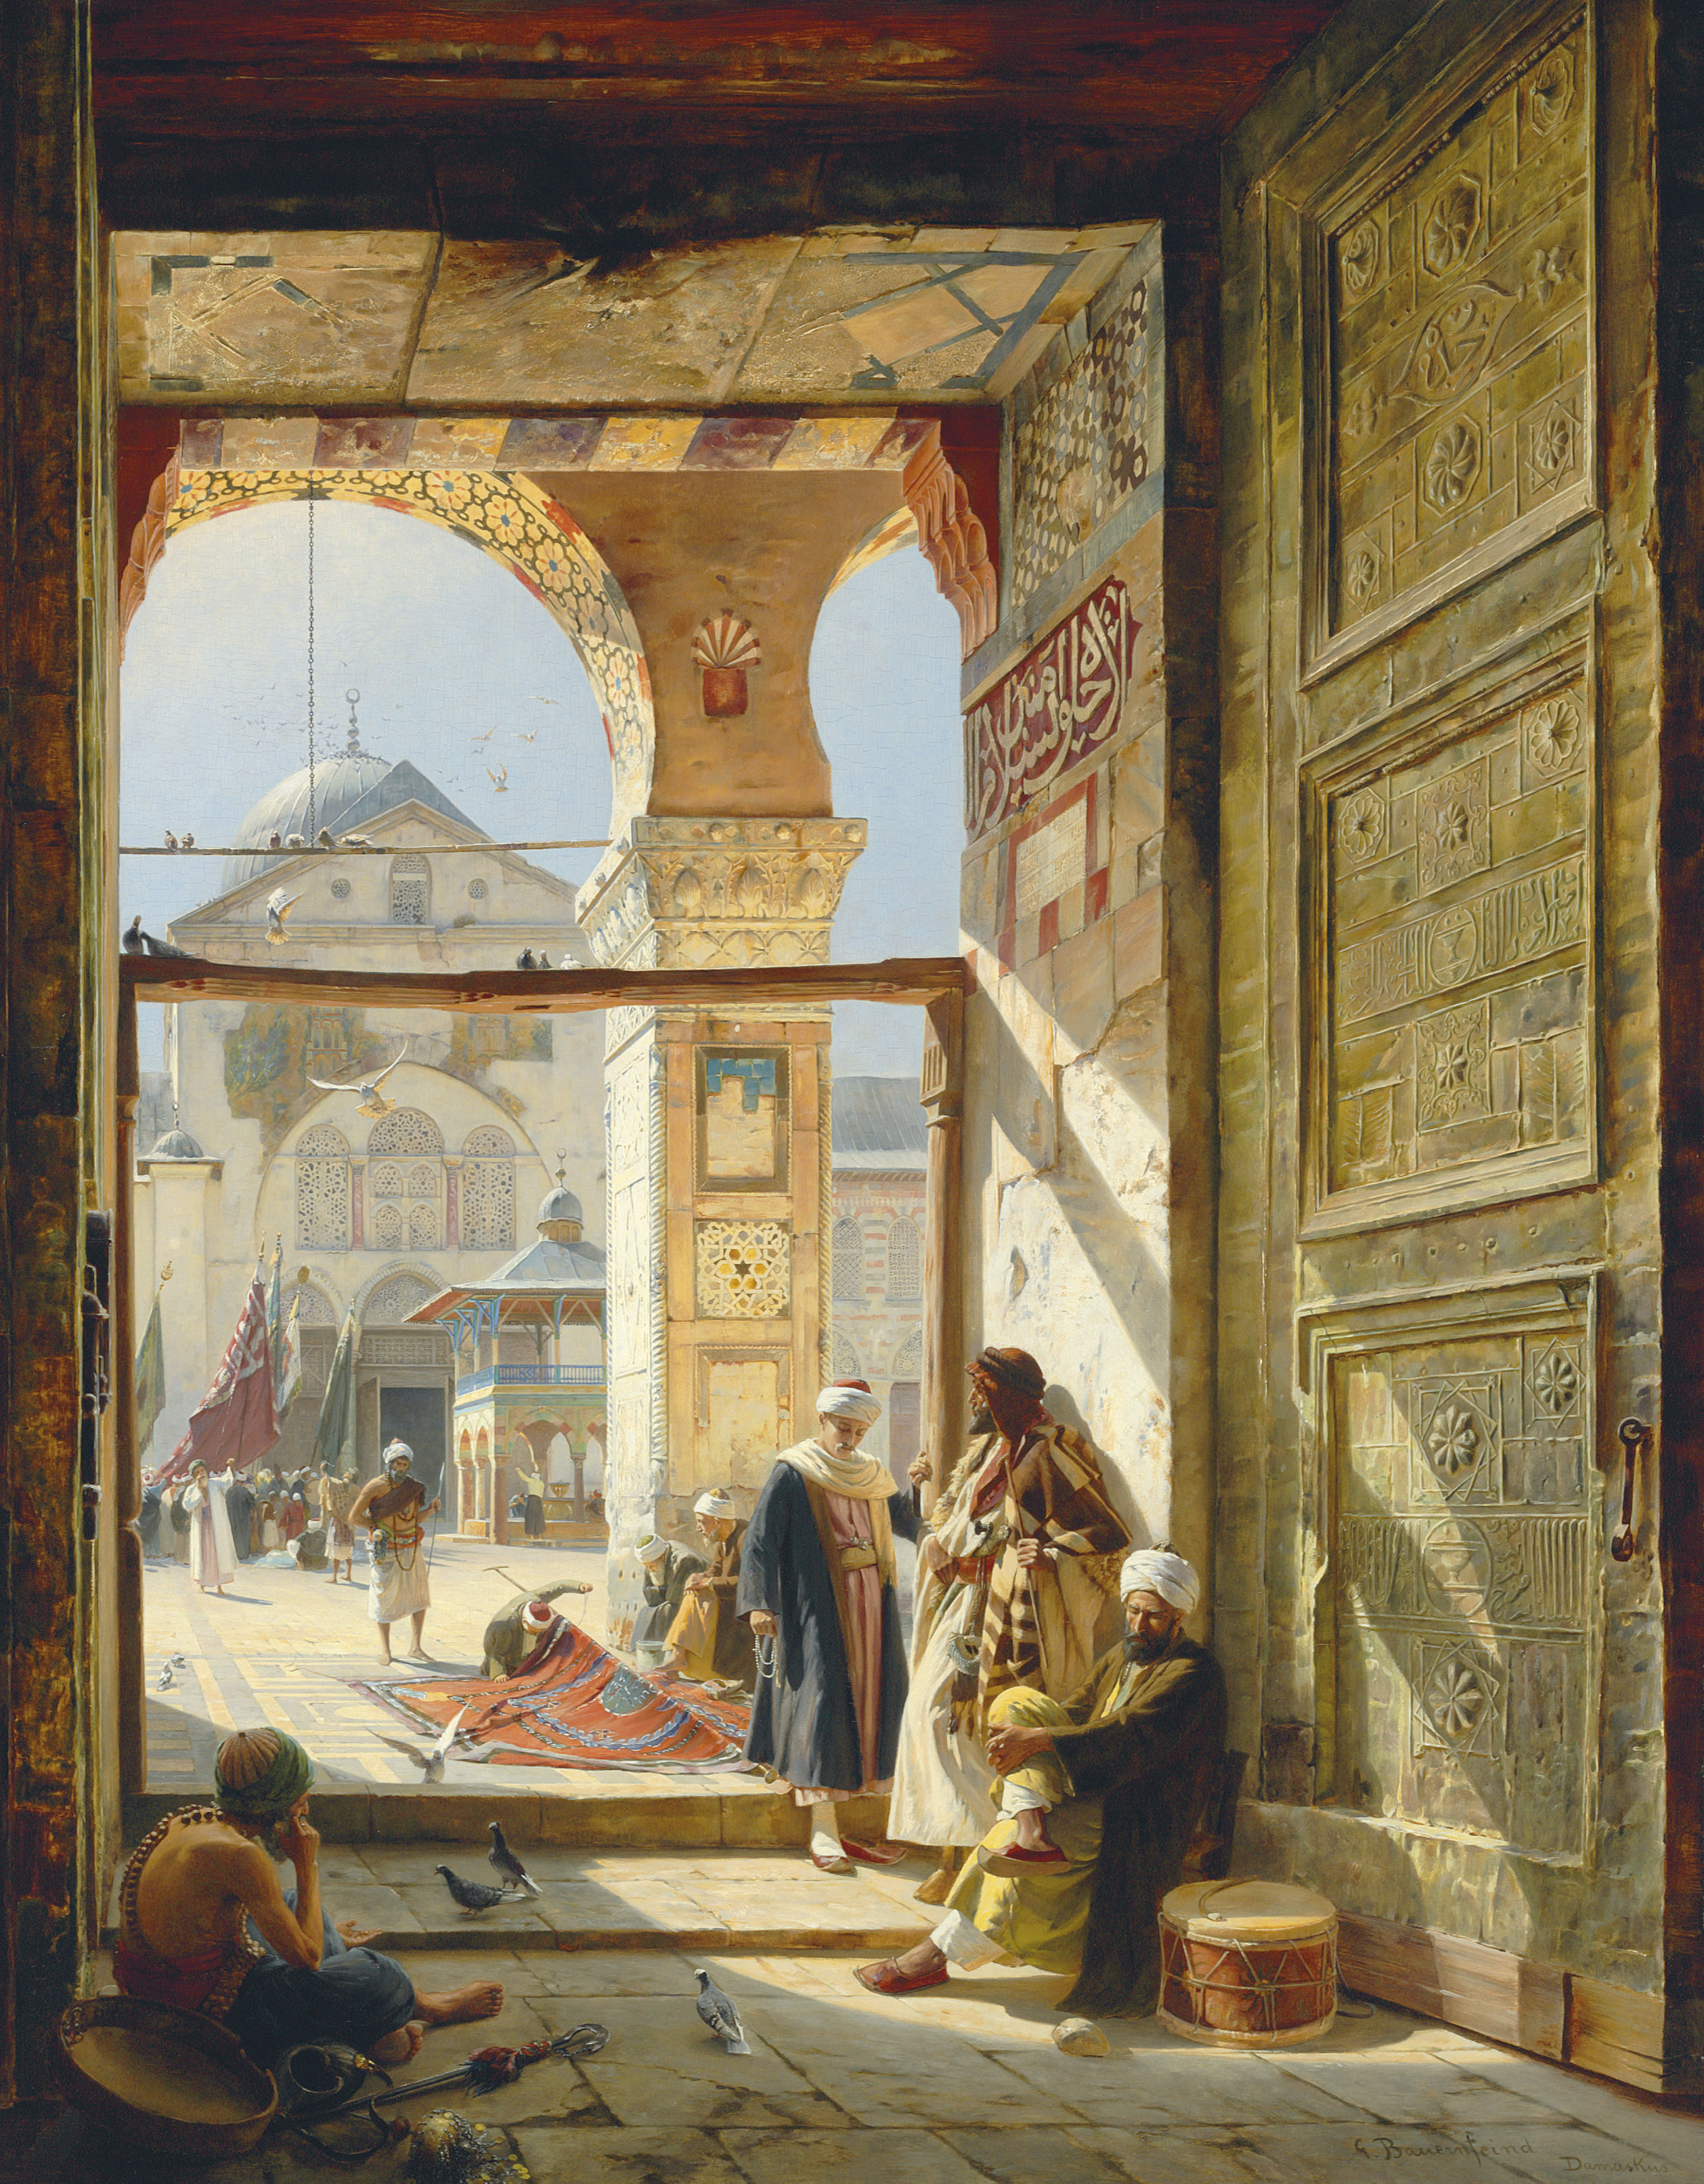 The Gate of the Great Umayyad Mosque, Damascus